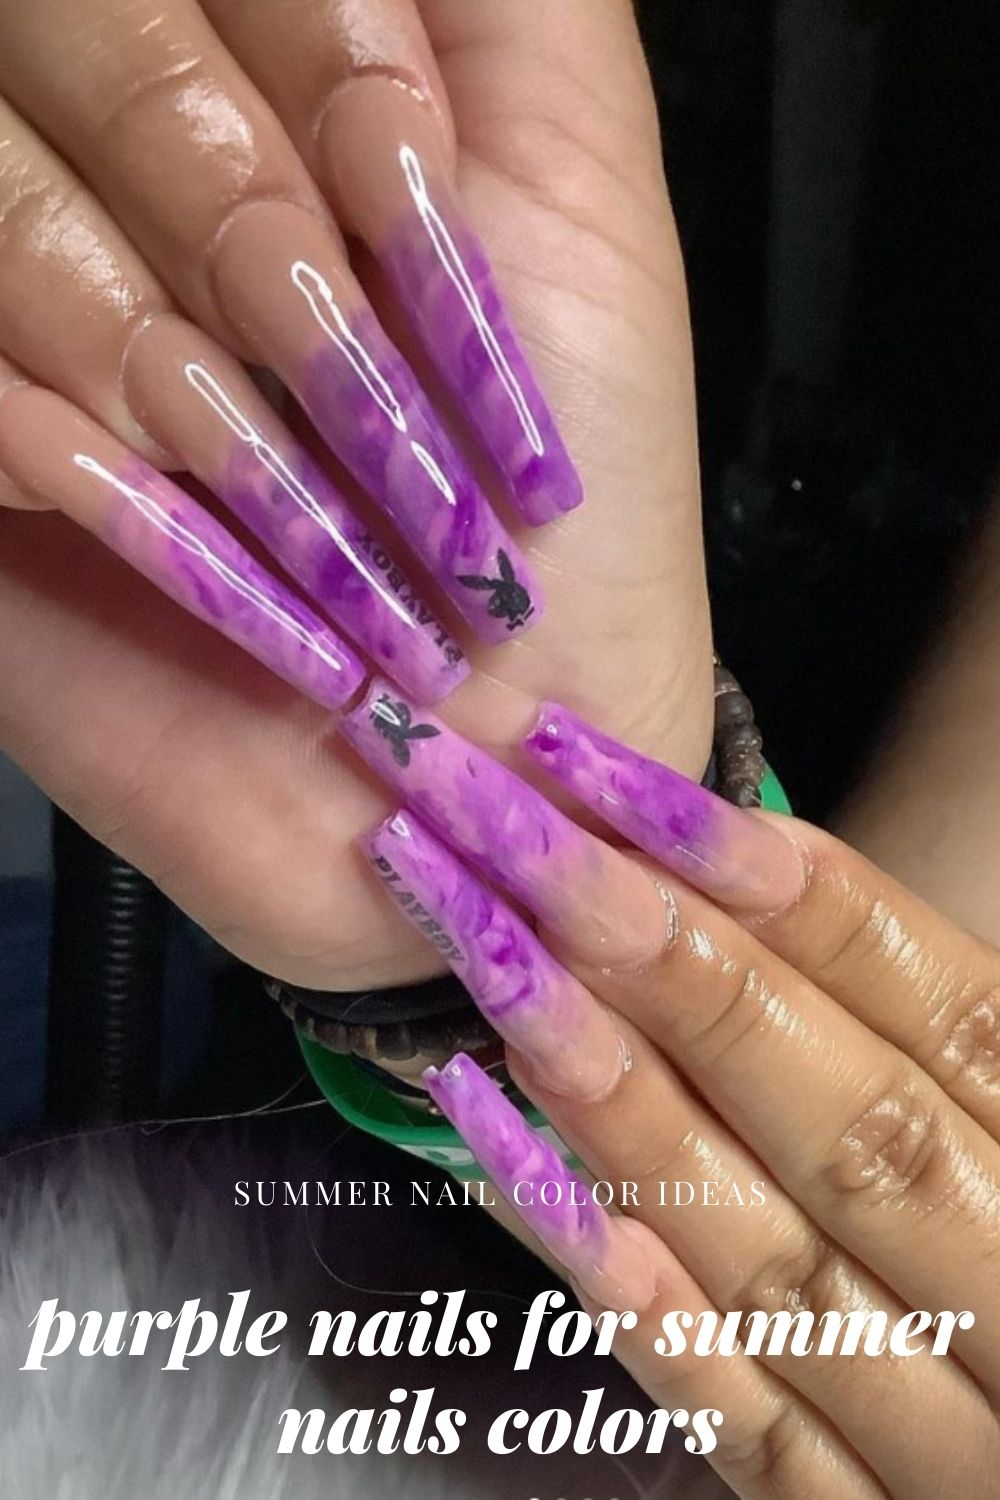 Purple nails for summer nail colors become a hit in the summer holiday.